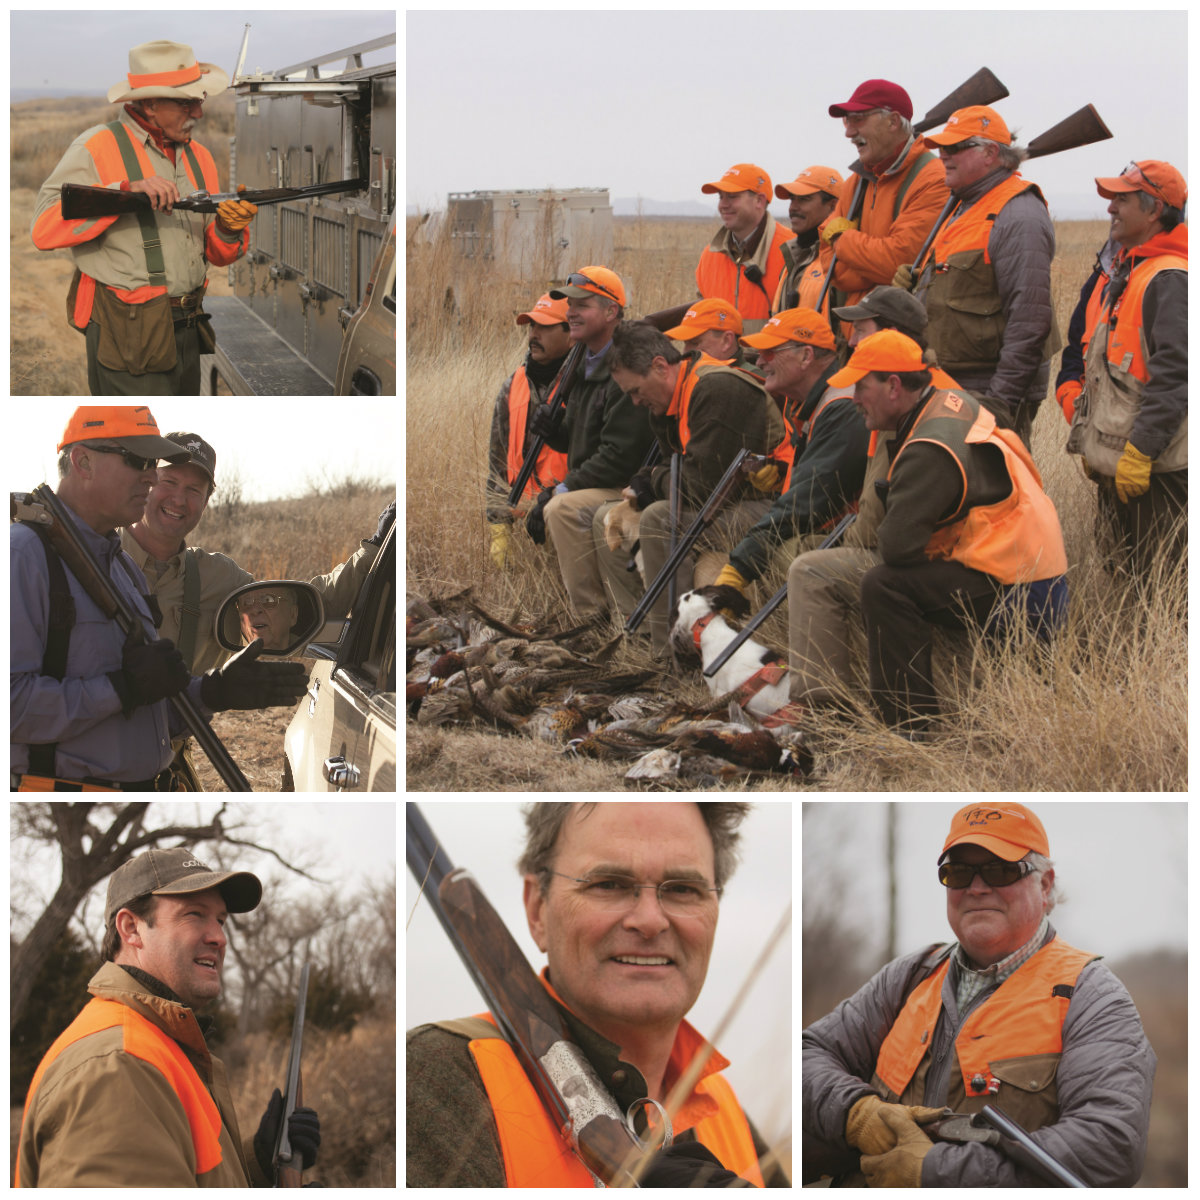 Clockwise from upper right: The Legends of Quail Hunters; National Skeet Shooters Hall of Famer Rick Pope; Park Cities Quail cofounder Joe Crafton; Covey Rise Publisher John Thames; WFAA's Pete Delkus and John Thames chat with Boone Pickens; Rolling Plains Quail Research Ranch founding member Rick Snipes. All of the Legends are ardent supporters of Park Cities Quail, a non-profit that has raised more than $6 million for quail conservation over the last decade. During that time, the Mesa Vista Ranch has been the top cooperating ranch for research.